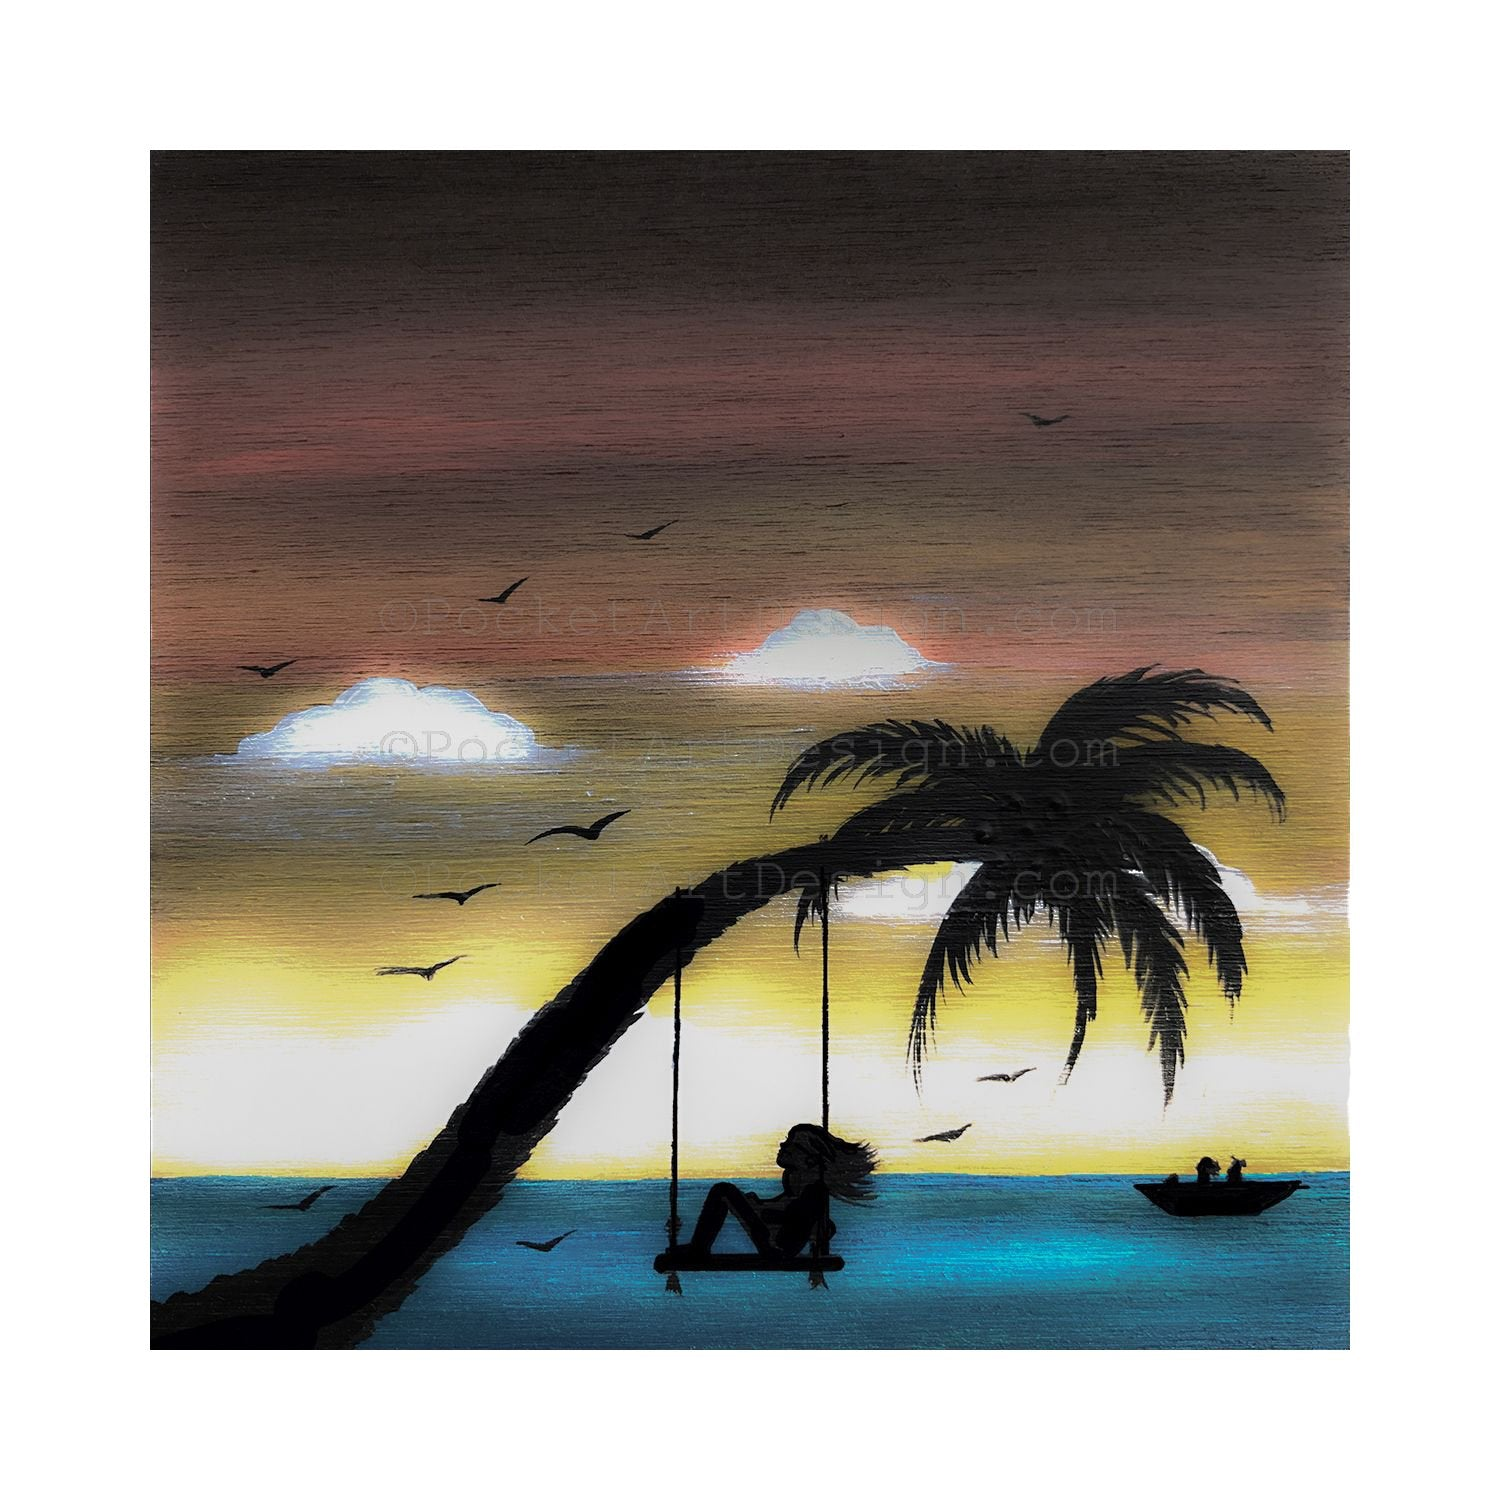 Girl swing on a palm tree in front of the ocean - silhouette - original miniature art print on 4 x 4 wood-Print-Easel Wood-PocketArtDesigns-Original Art-wall rt